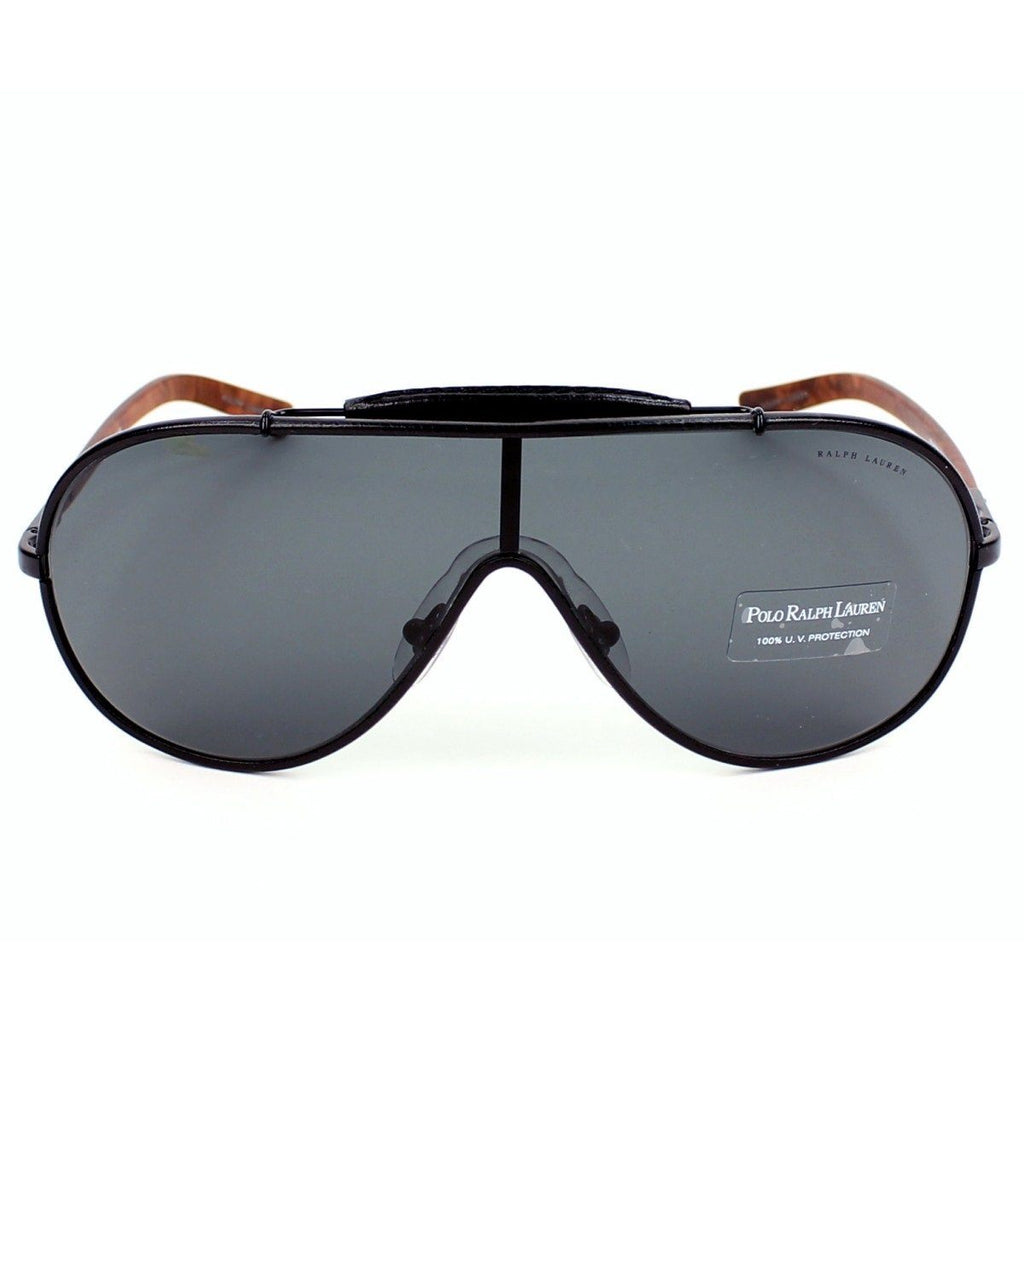 POLO RALPH LAUREN PH3074PQ - 922571 SUNGLASSES